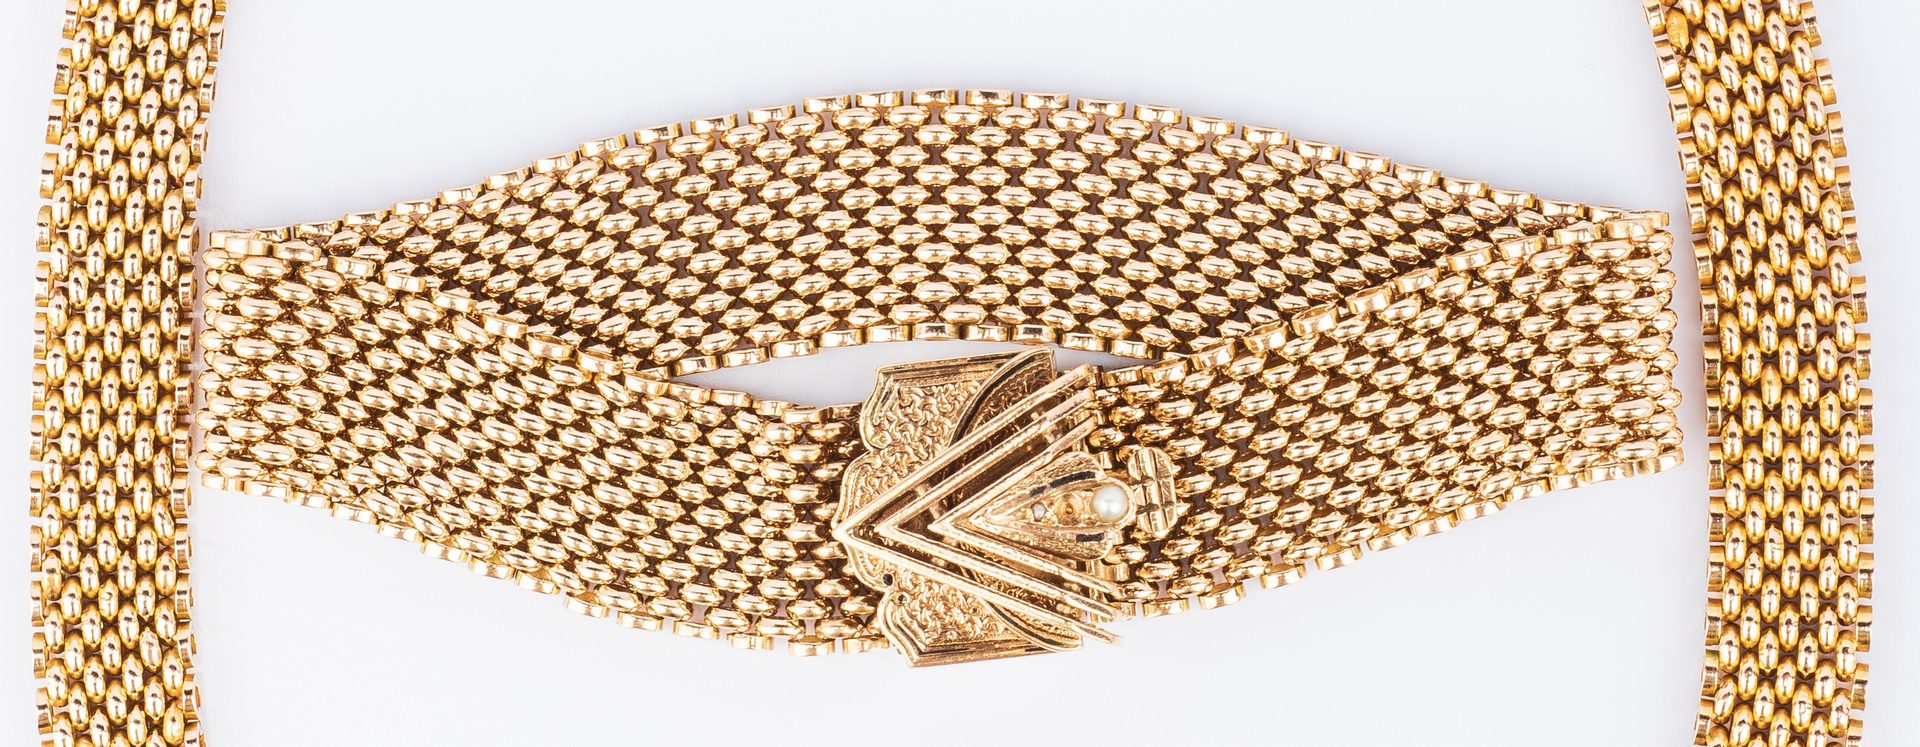 Lot 38: Gold mesh necklace and bracelet, Art Deco style